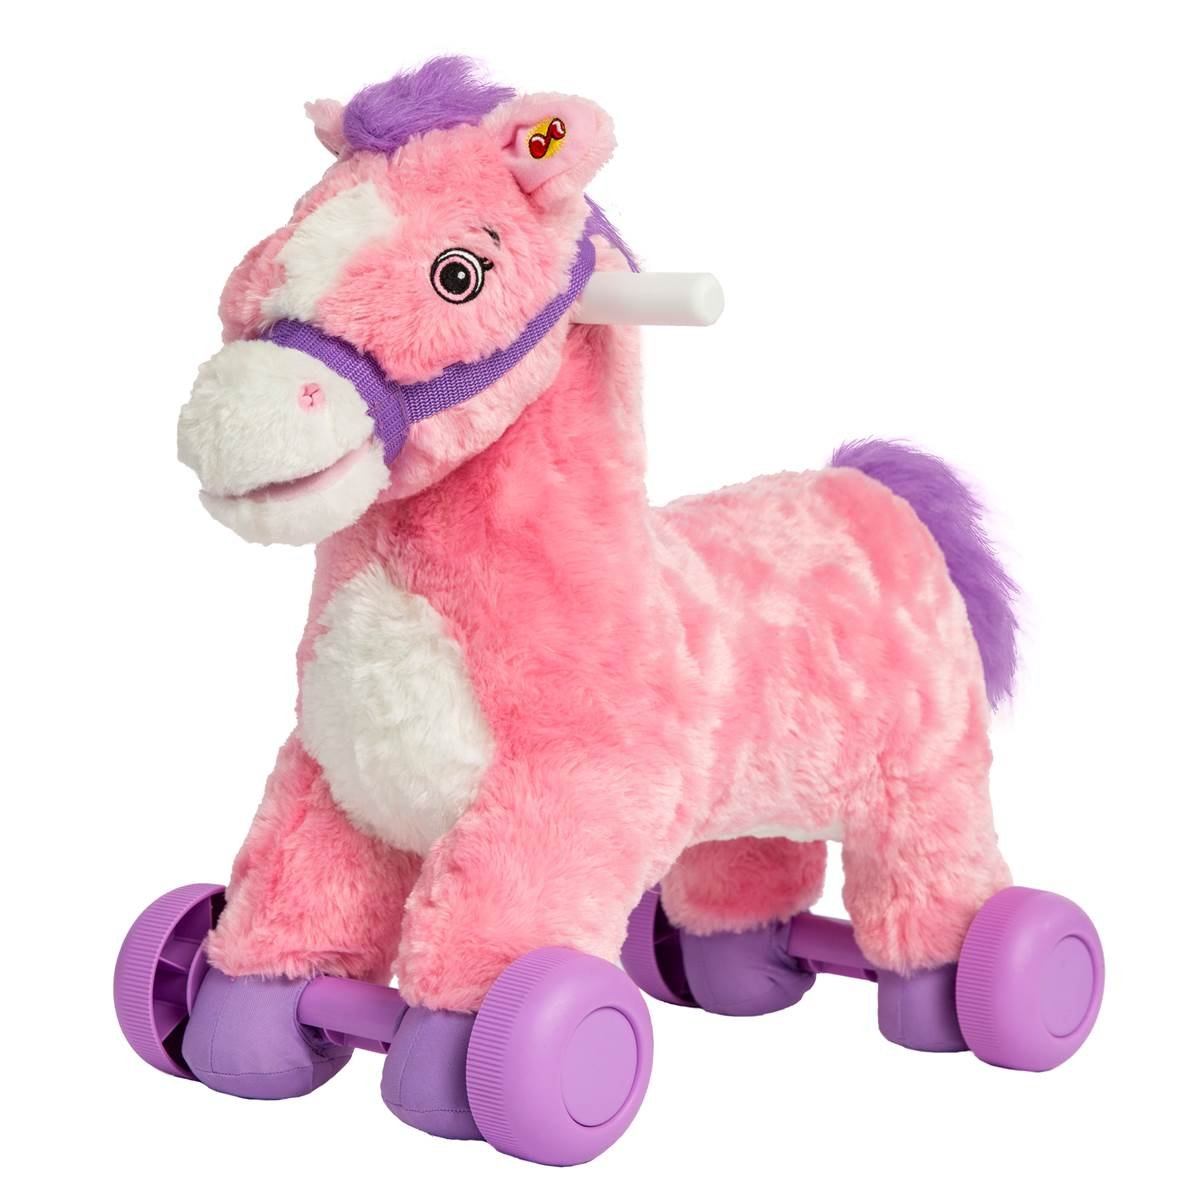 Rockin' Rider Charger 2-in-1 Pony Ride-On (Pink/Purple)